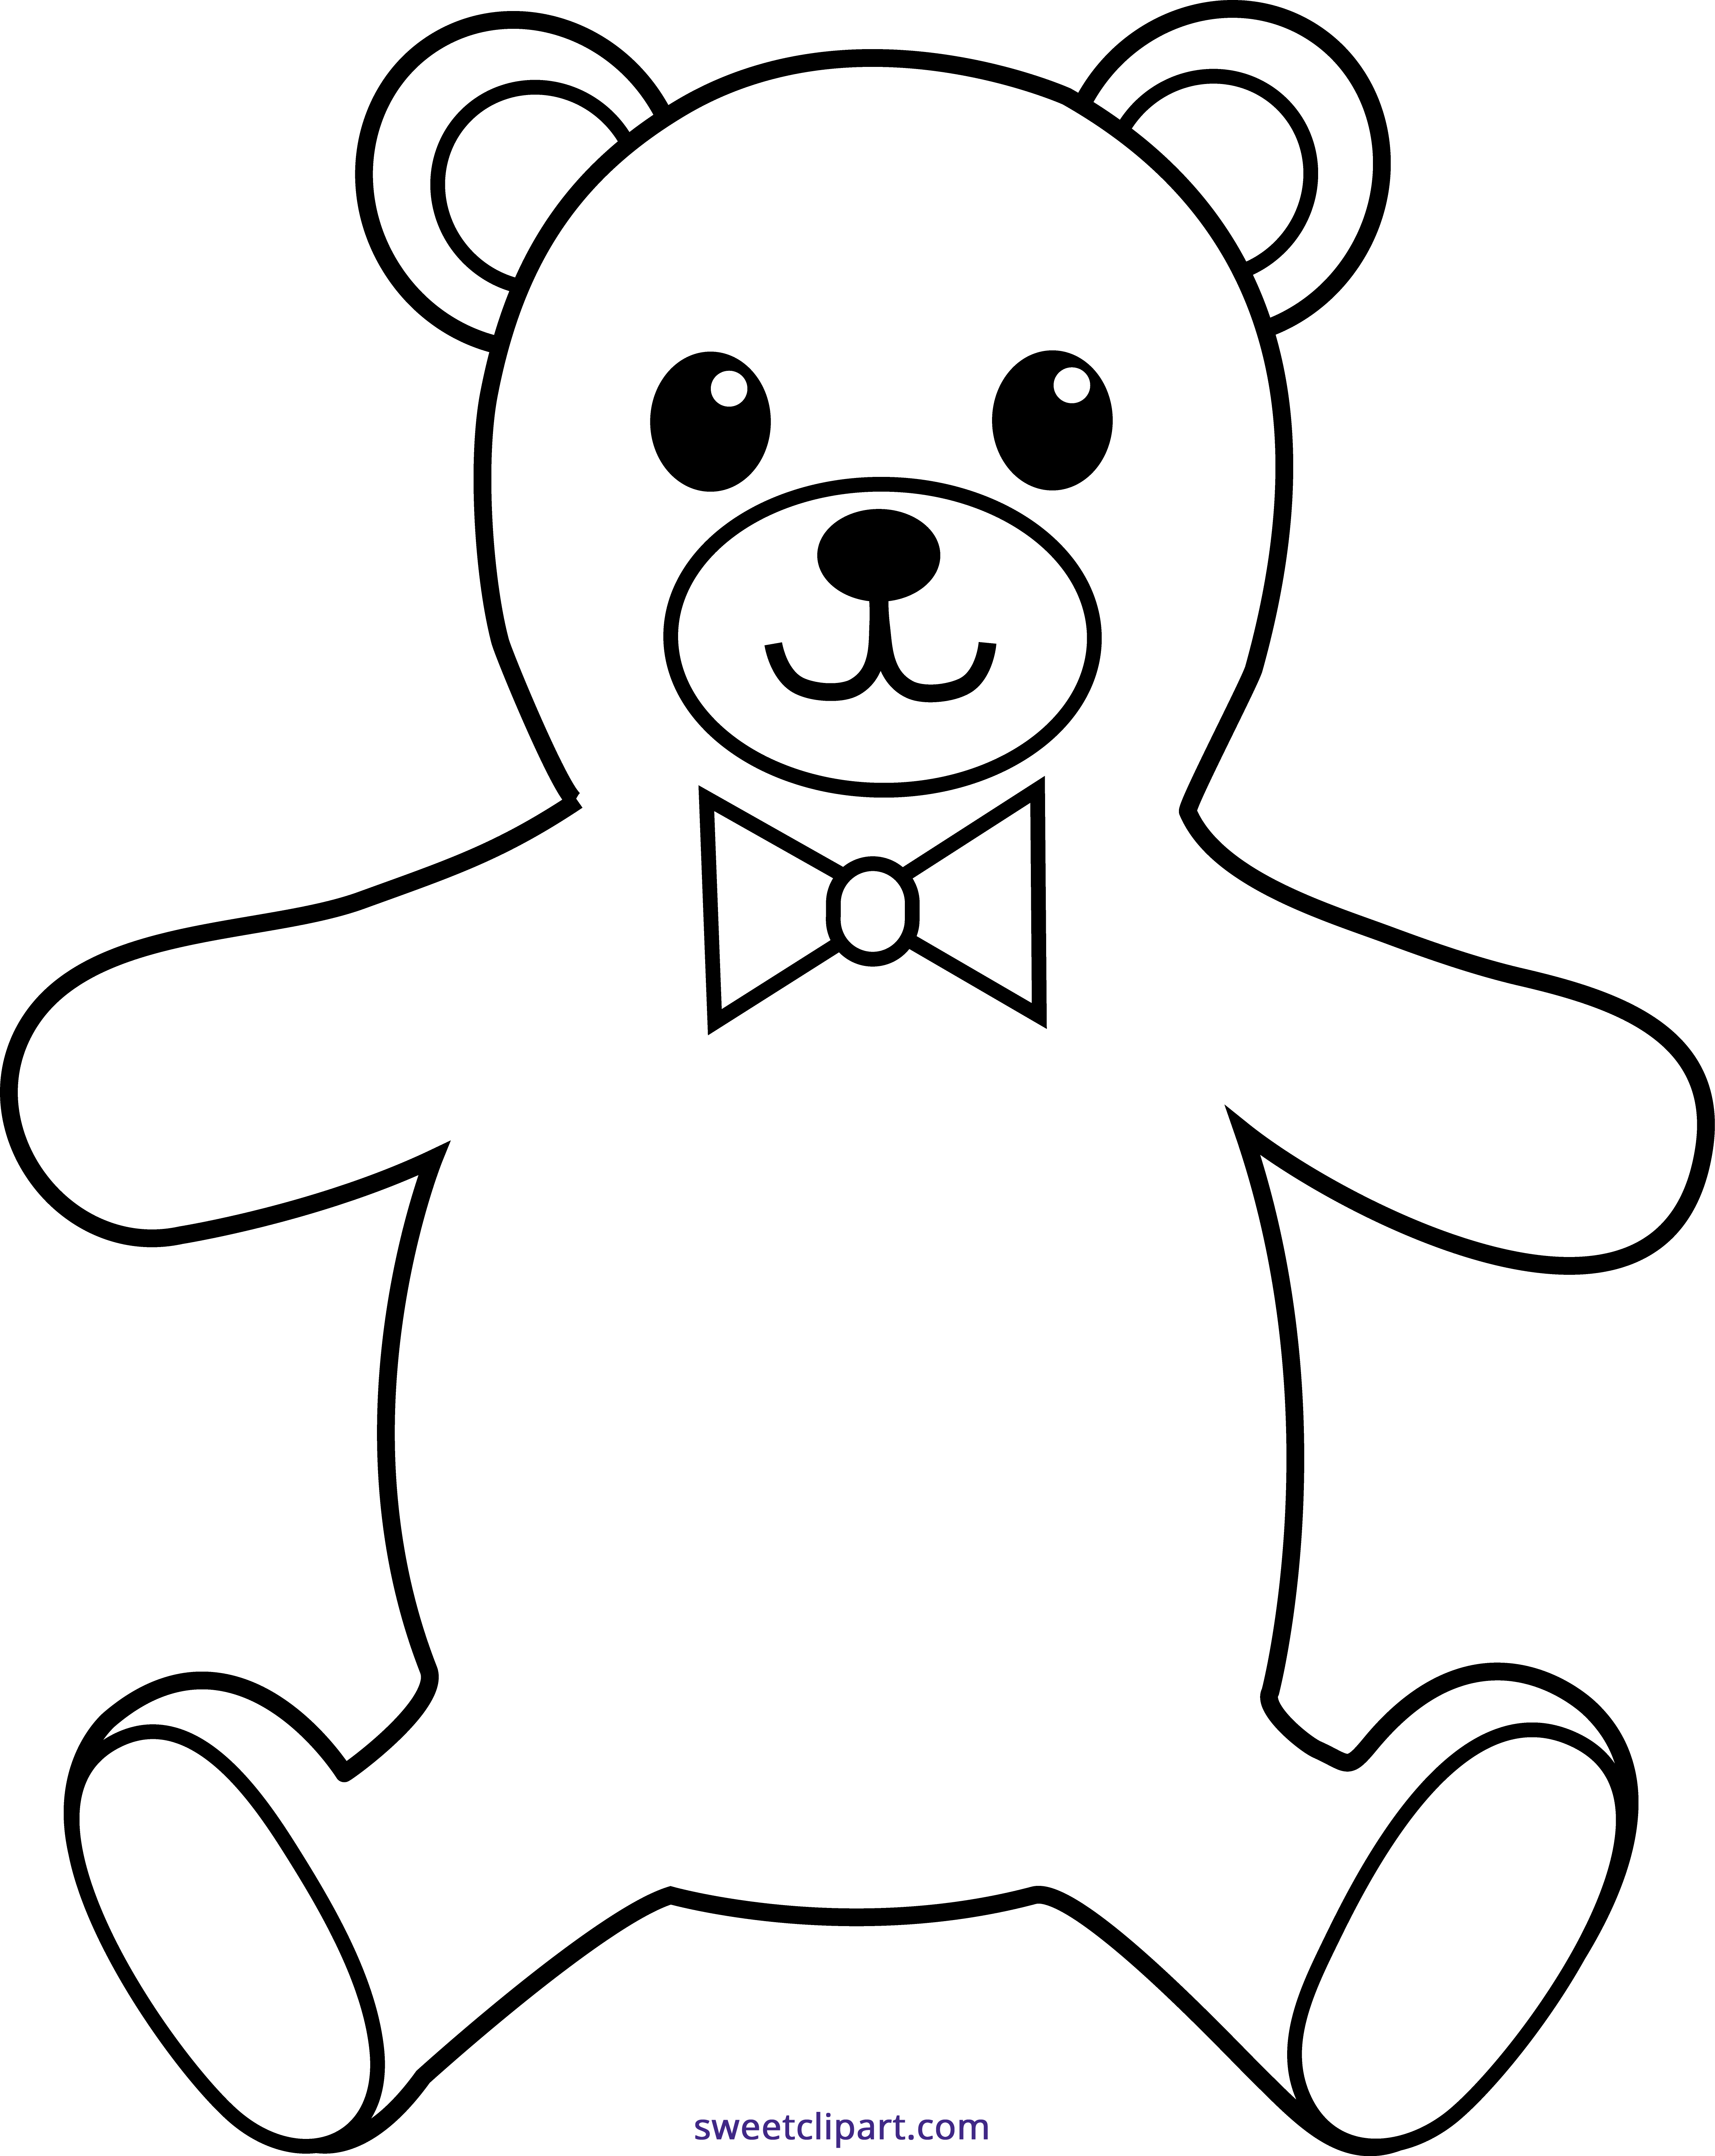 20+ Stuffed Animals Black And White Clipart